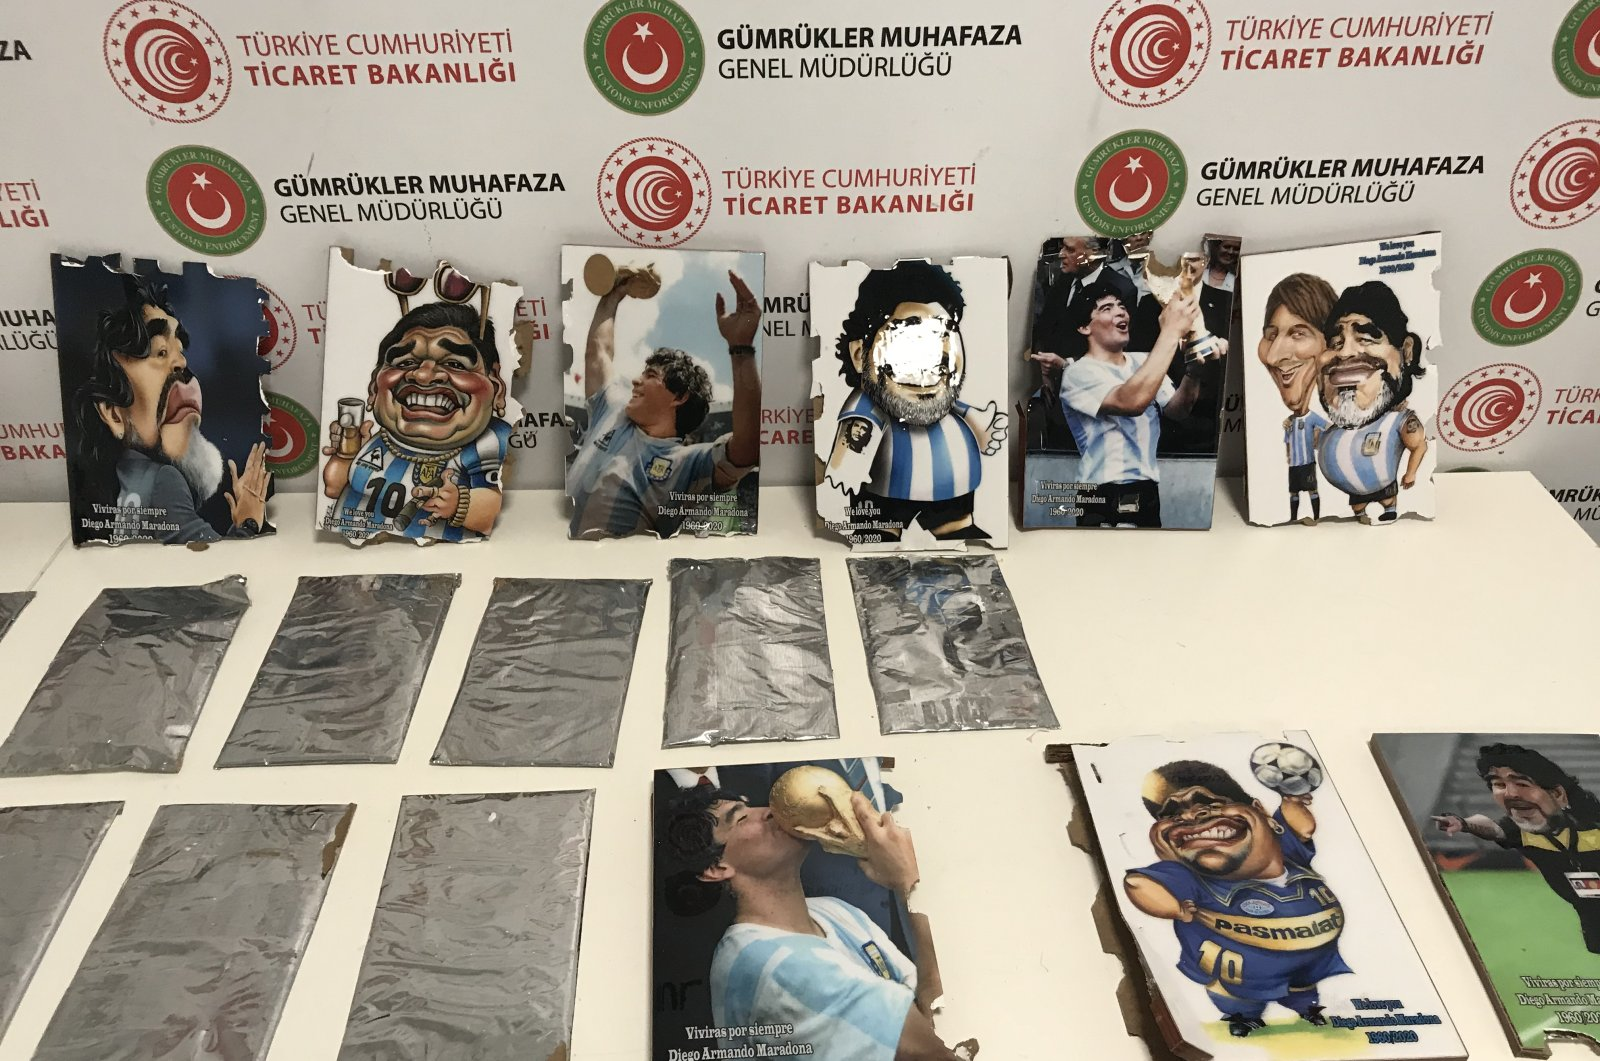 A view of paintings next to plates of cocaine at Istanbul Airport, in Istanbul, Turkey, Dec. 23, 2020. (AA PHOTO)